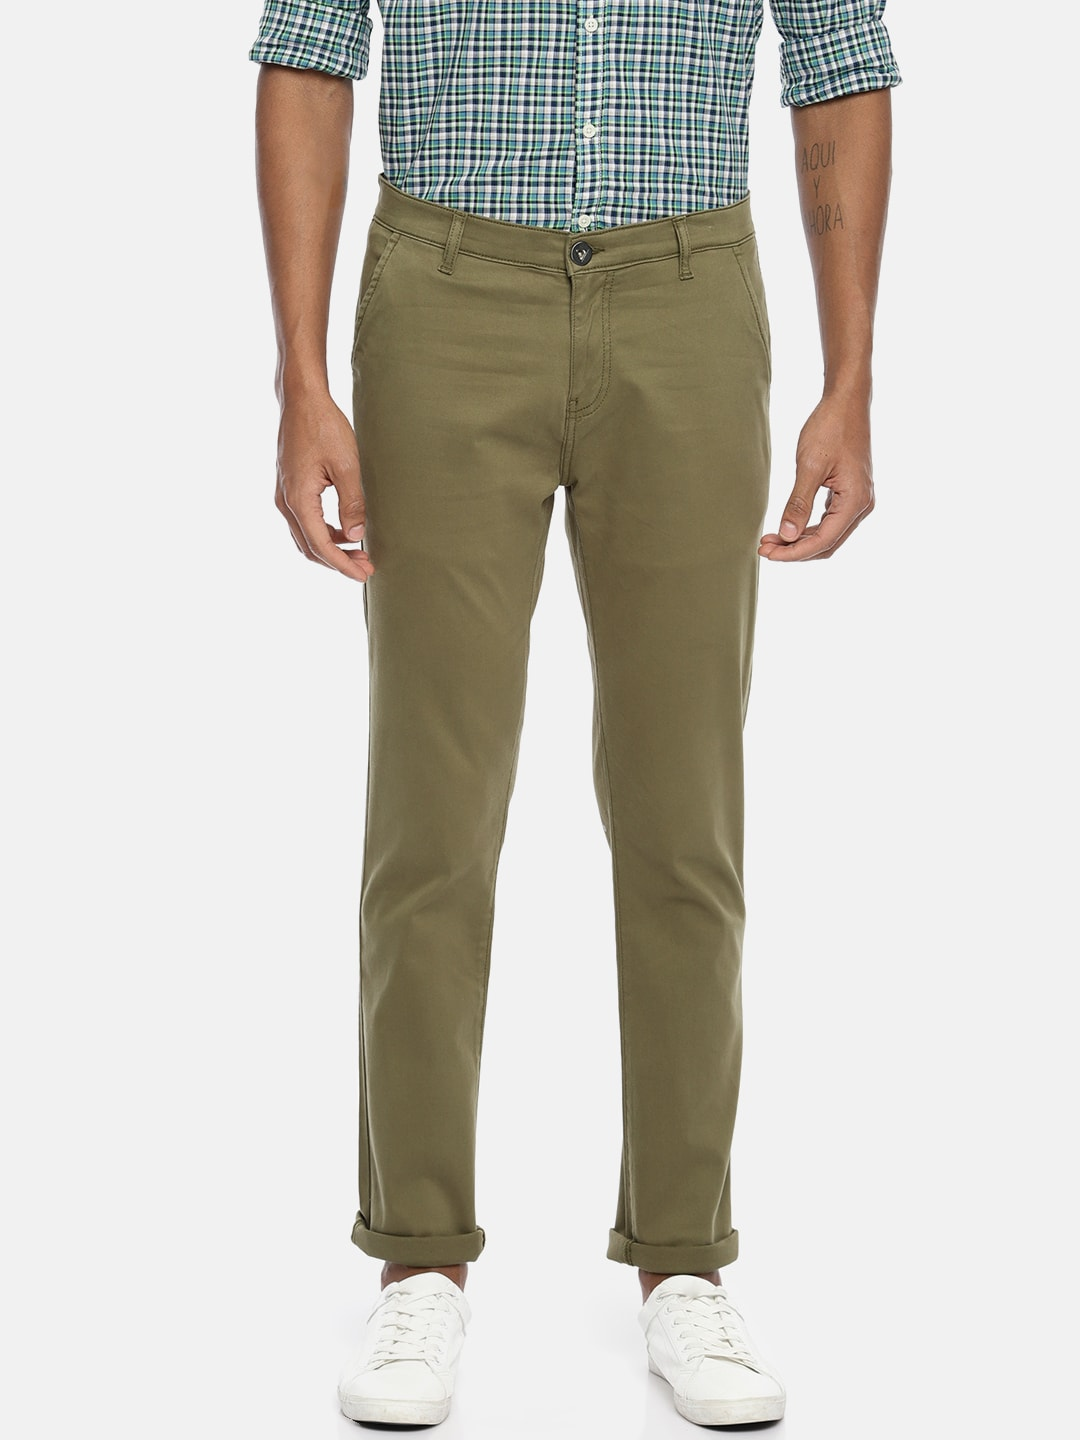 d2fcb27a180 Men Casual Trousers - Buy Casual Pants for Men in India - Myntra